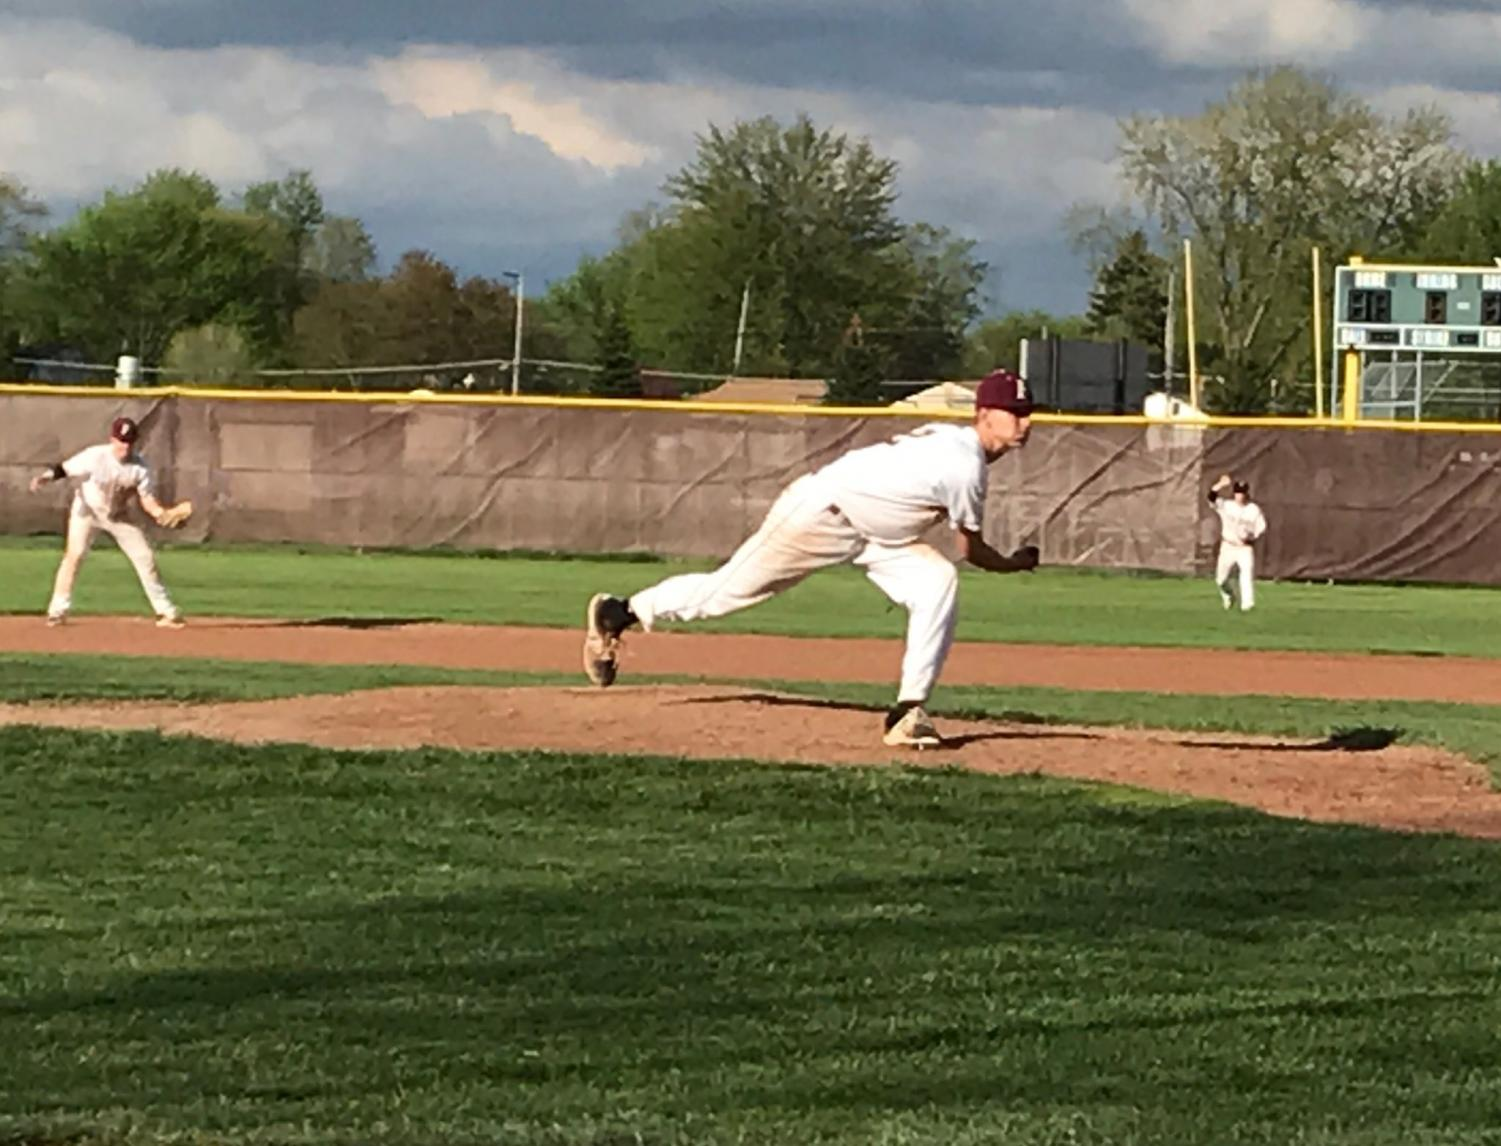 Junior pitcher Nolan Hood takes stride to finish his pitch.